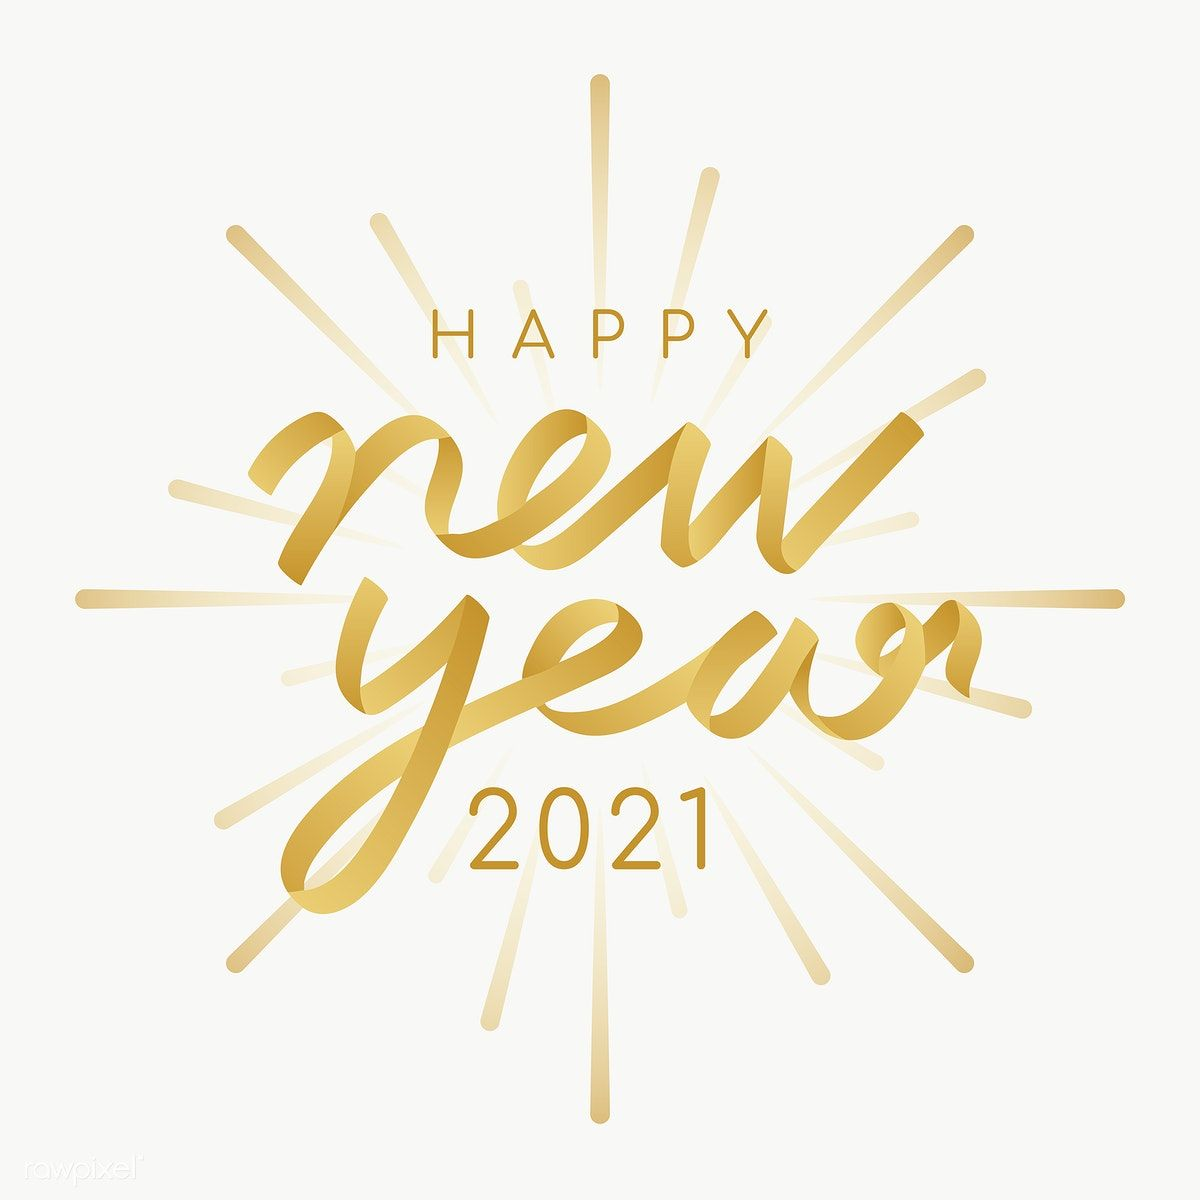 Happy New Year 2021 transparent png image by rawpixelcom 1200x1200